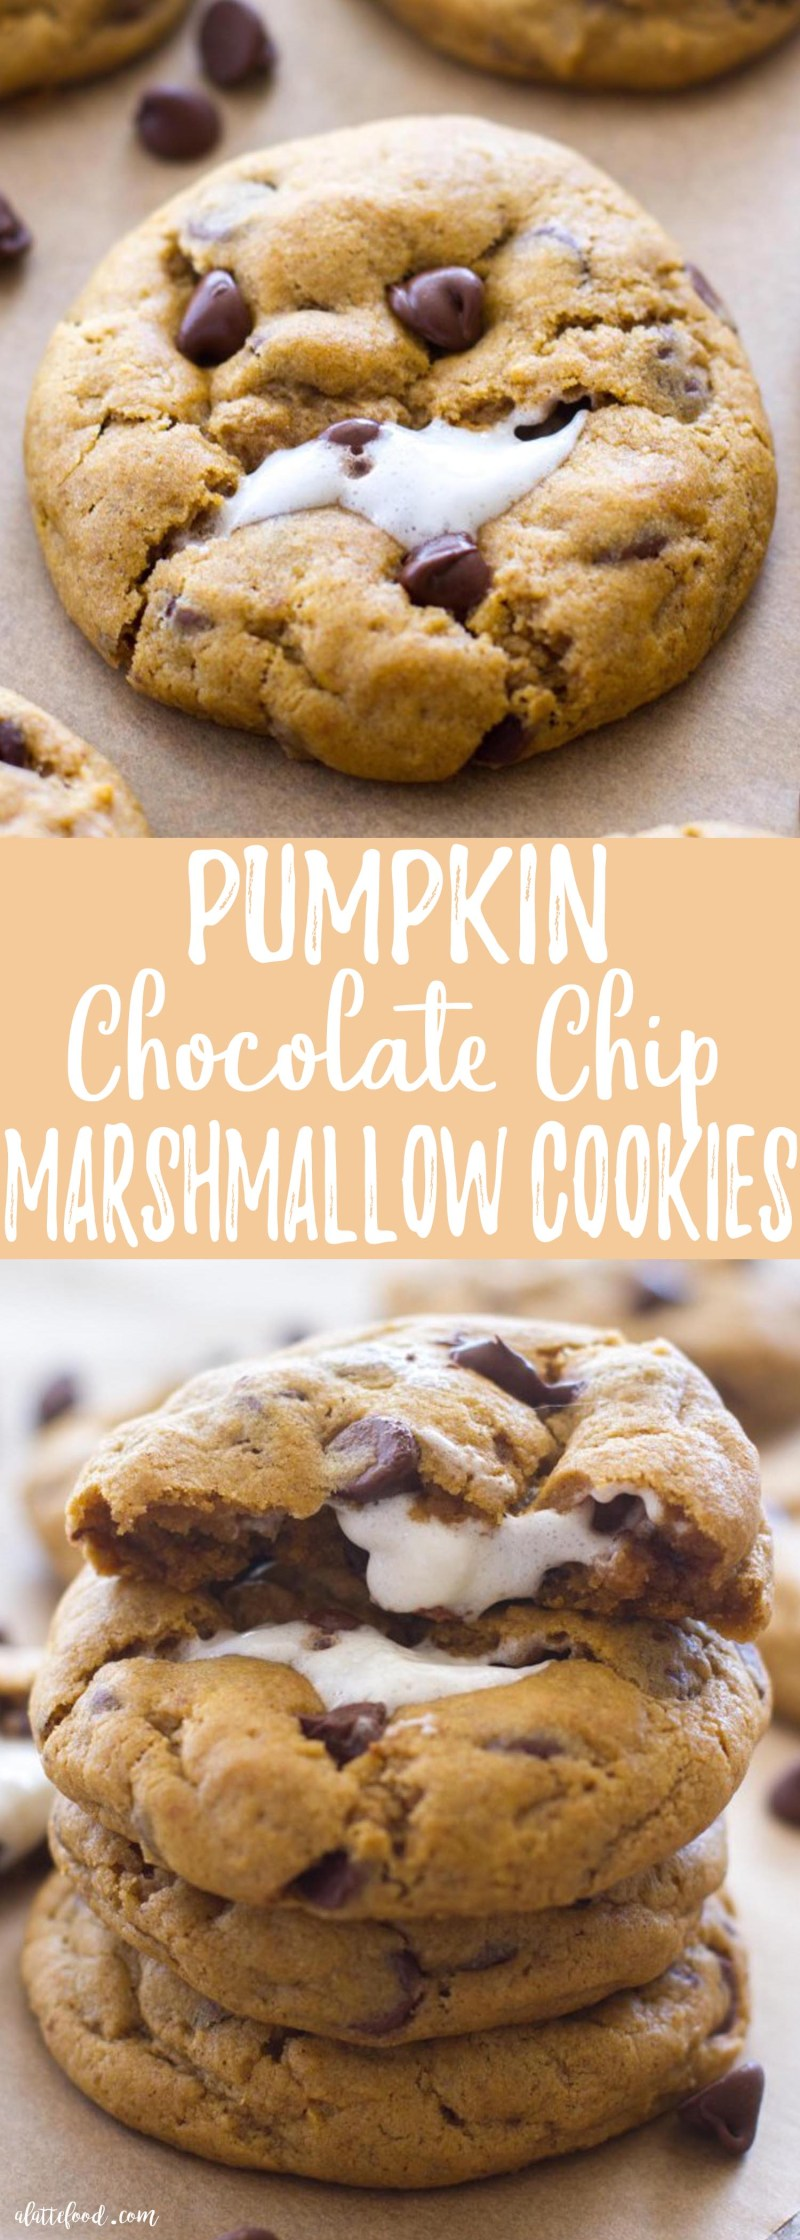 These thick and chewy Pumpkin Chocolate Chip Cookies are baked with a gooey marshmallow inside, making these rich, chocolatey pumpkin cookies the perfect fall dessert! Plus, a step-by-step video below!